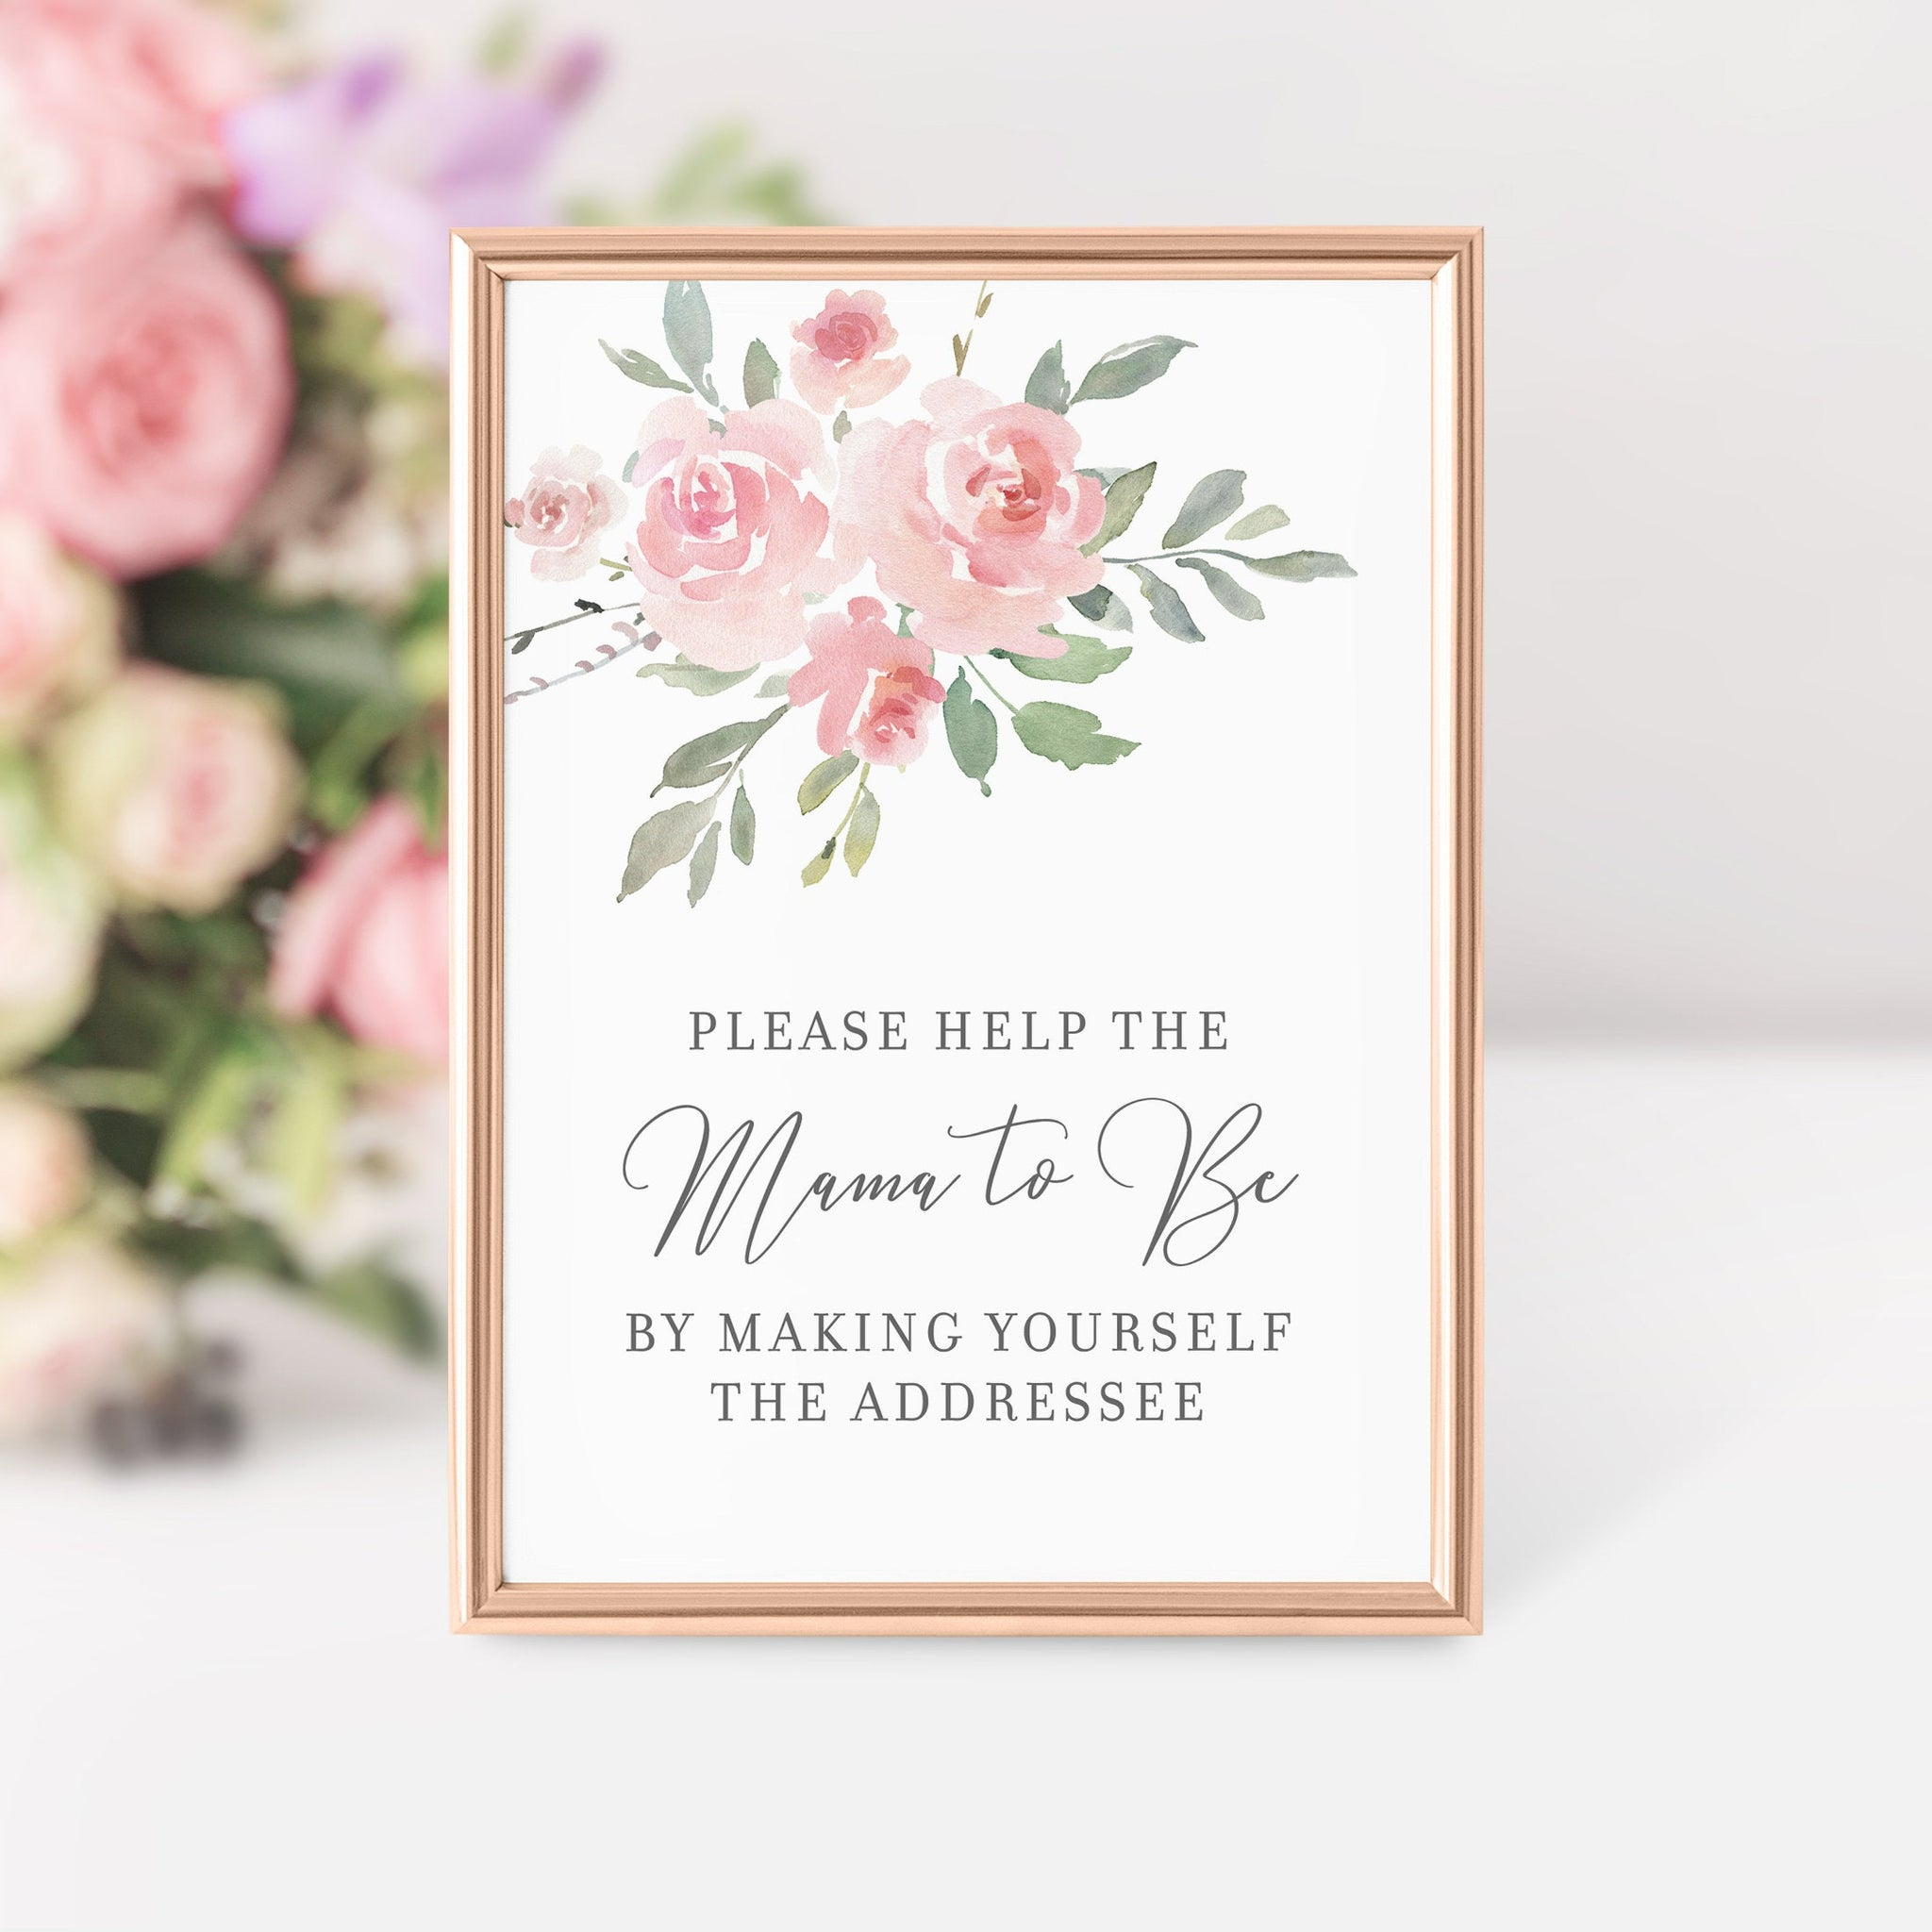 Baby Shower Address an Envelope Sign, Baby Shower Signs Printable, Floral Baby Shower Decorations, DIGITAL DOWNLOAD - FR100